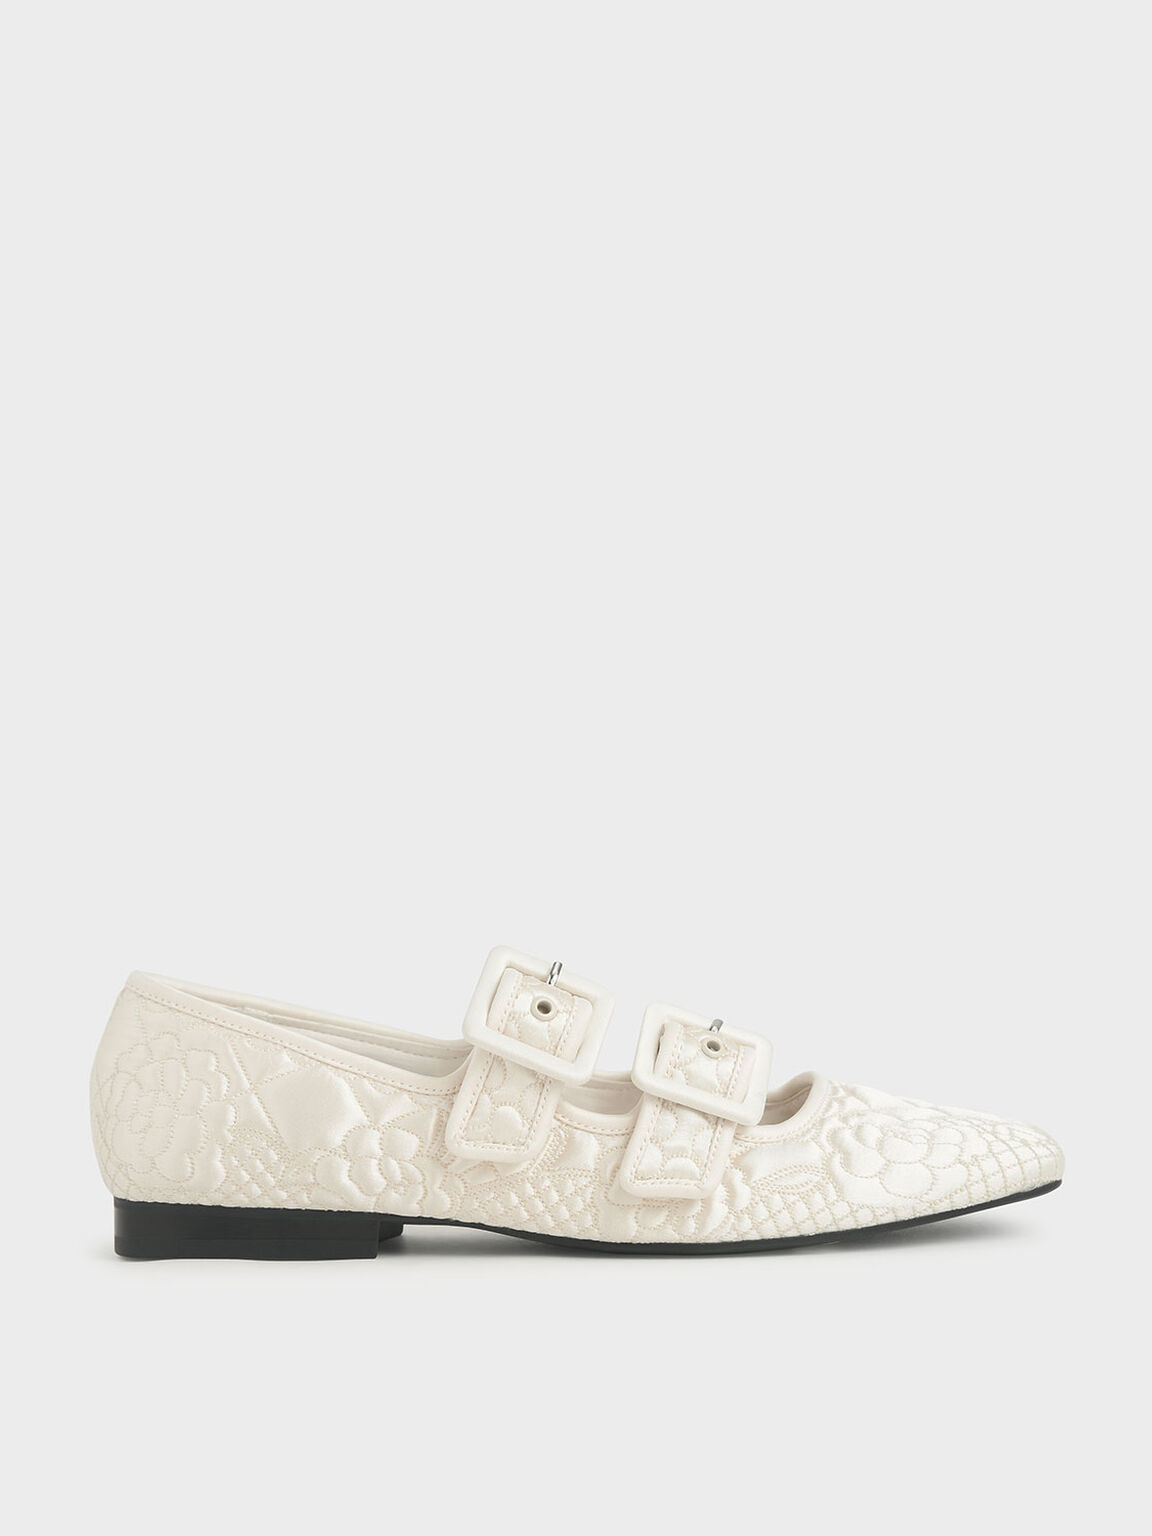 Cecilie Bahnsen X CHARLES & KEITH: Quilted Recycled Satin Dhalia Mary Janes, Cream, hi-res